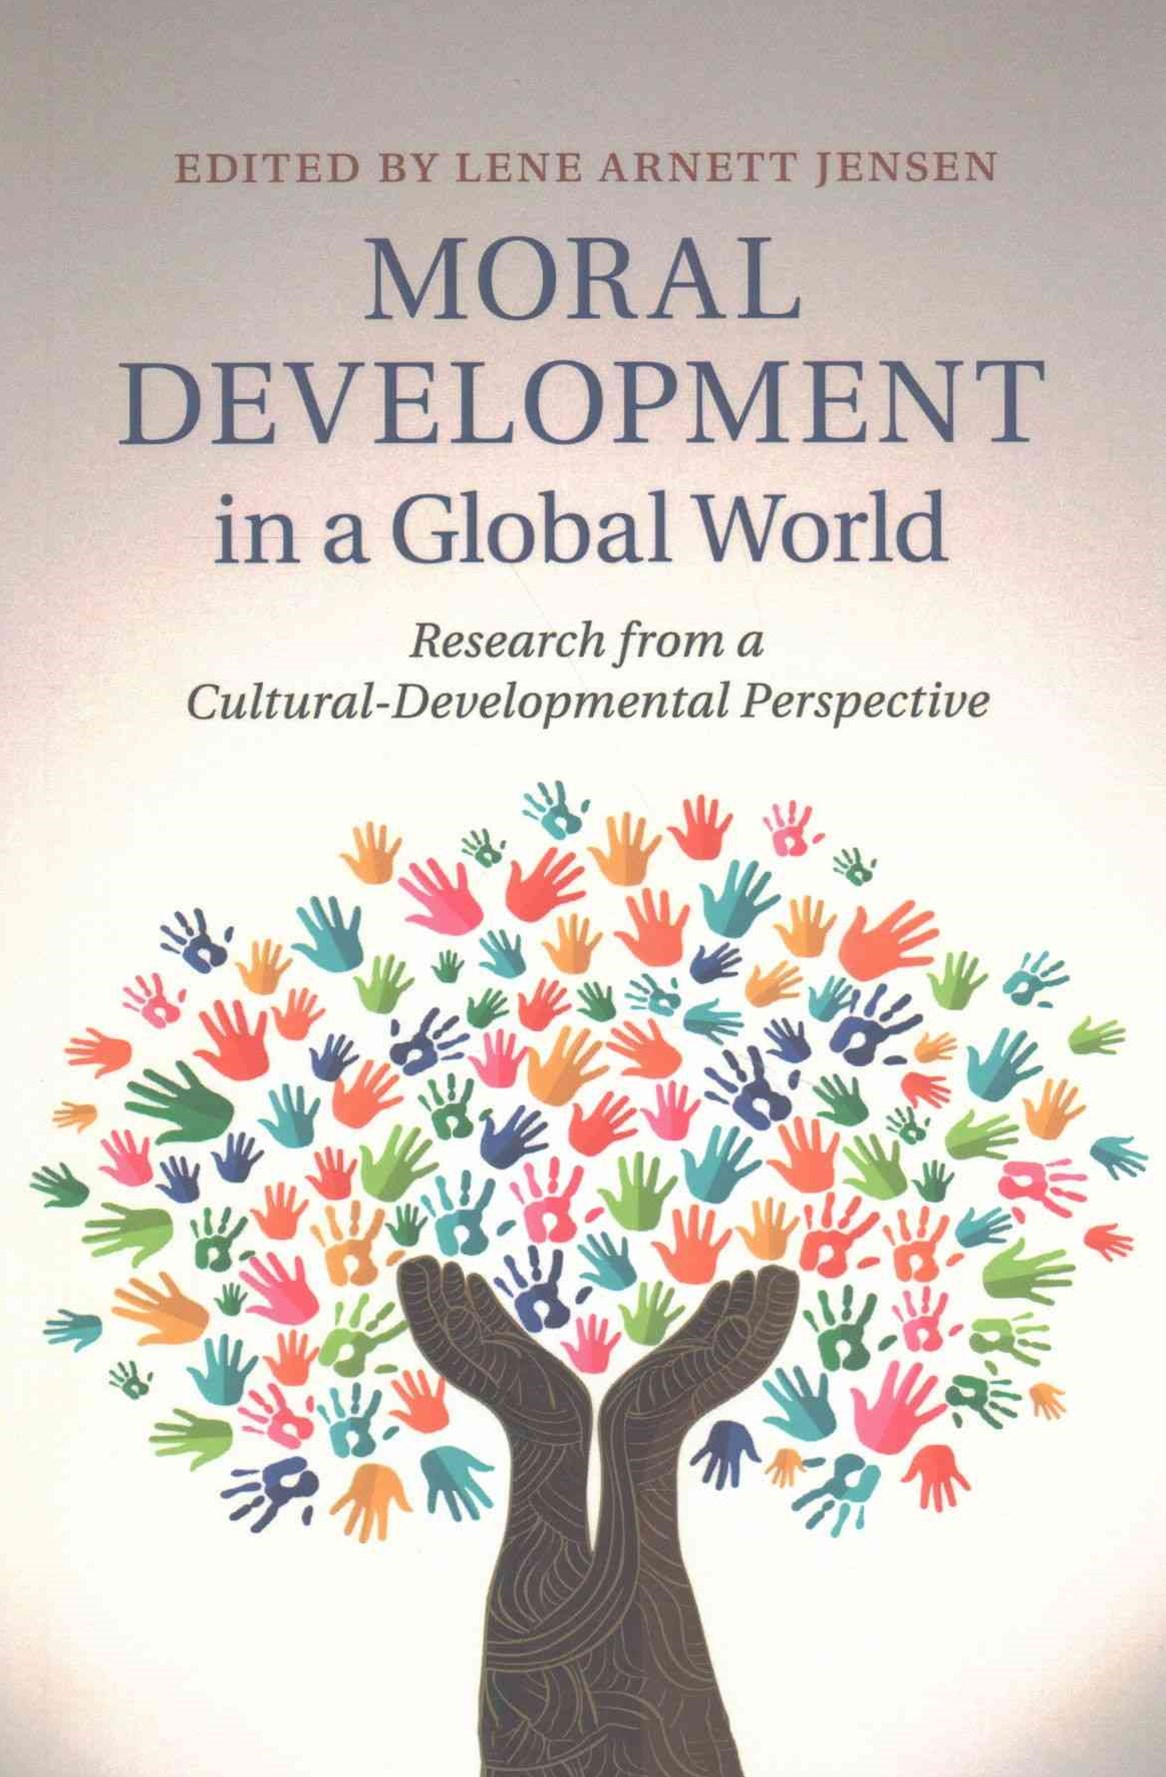 Moral Development in a Global World